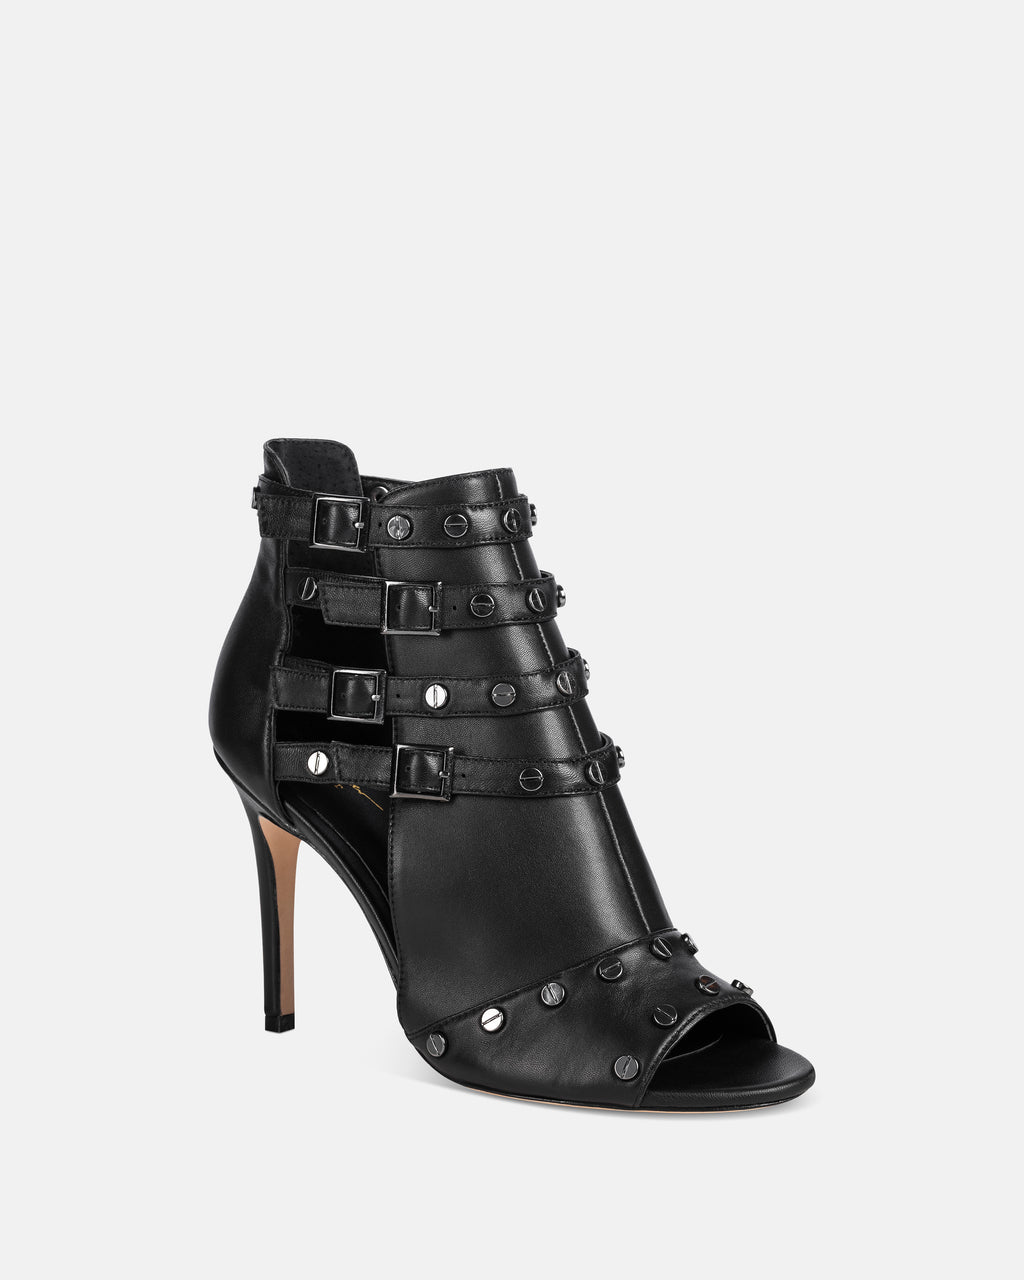 JOCELIN - JOCELIN LEATHER STILETTO - shoes - shoes - Accented with metal hardware and buckles at the ankle, this heel is an edgy update to the classic black heel.